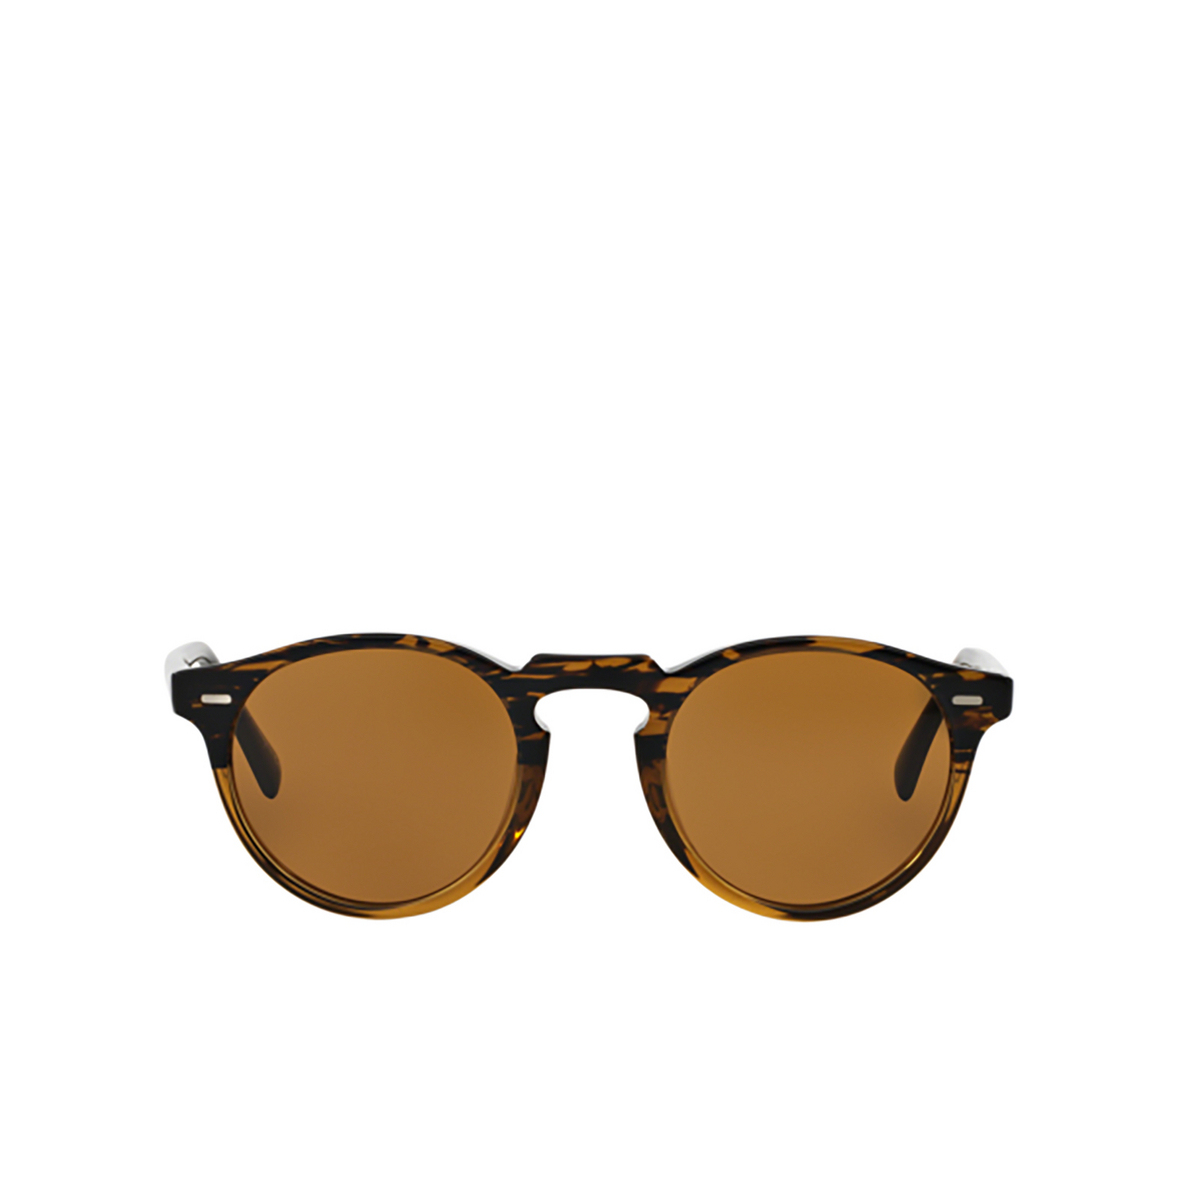 Oliver Peoples® Round Sunglasses: Gregory Peck Sun OV5217S color Tortoise (8108) 100153.